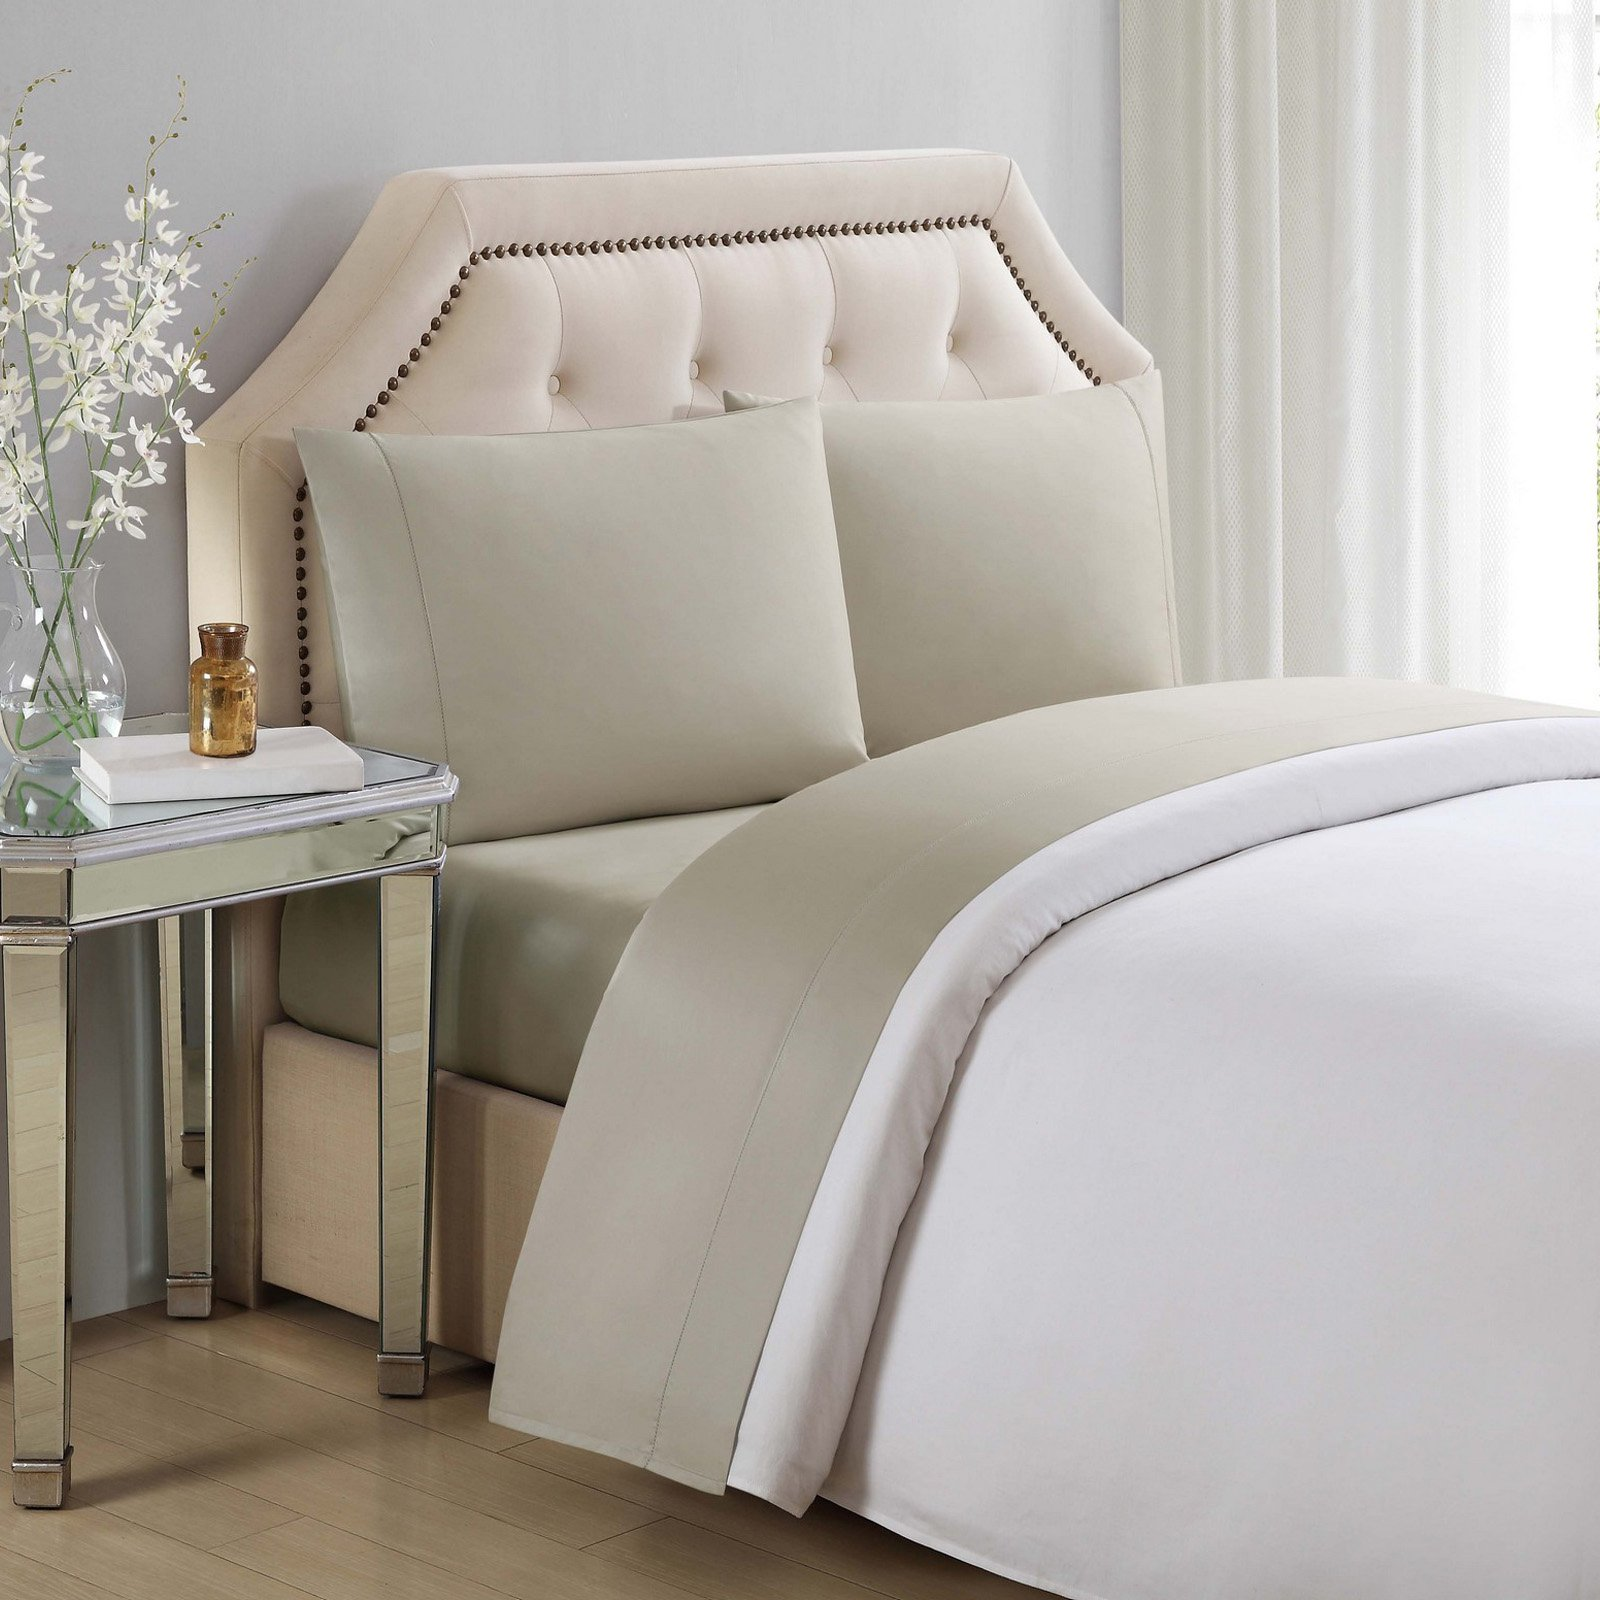 610 Thread Count Cotton Solid Bright White Pillowcases by...